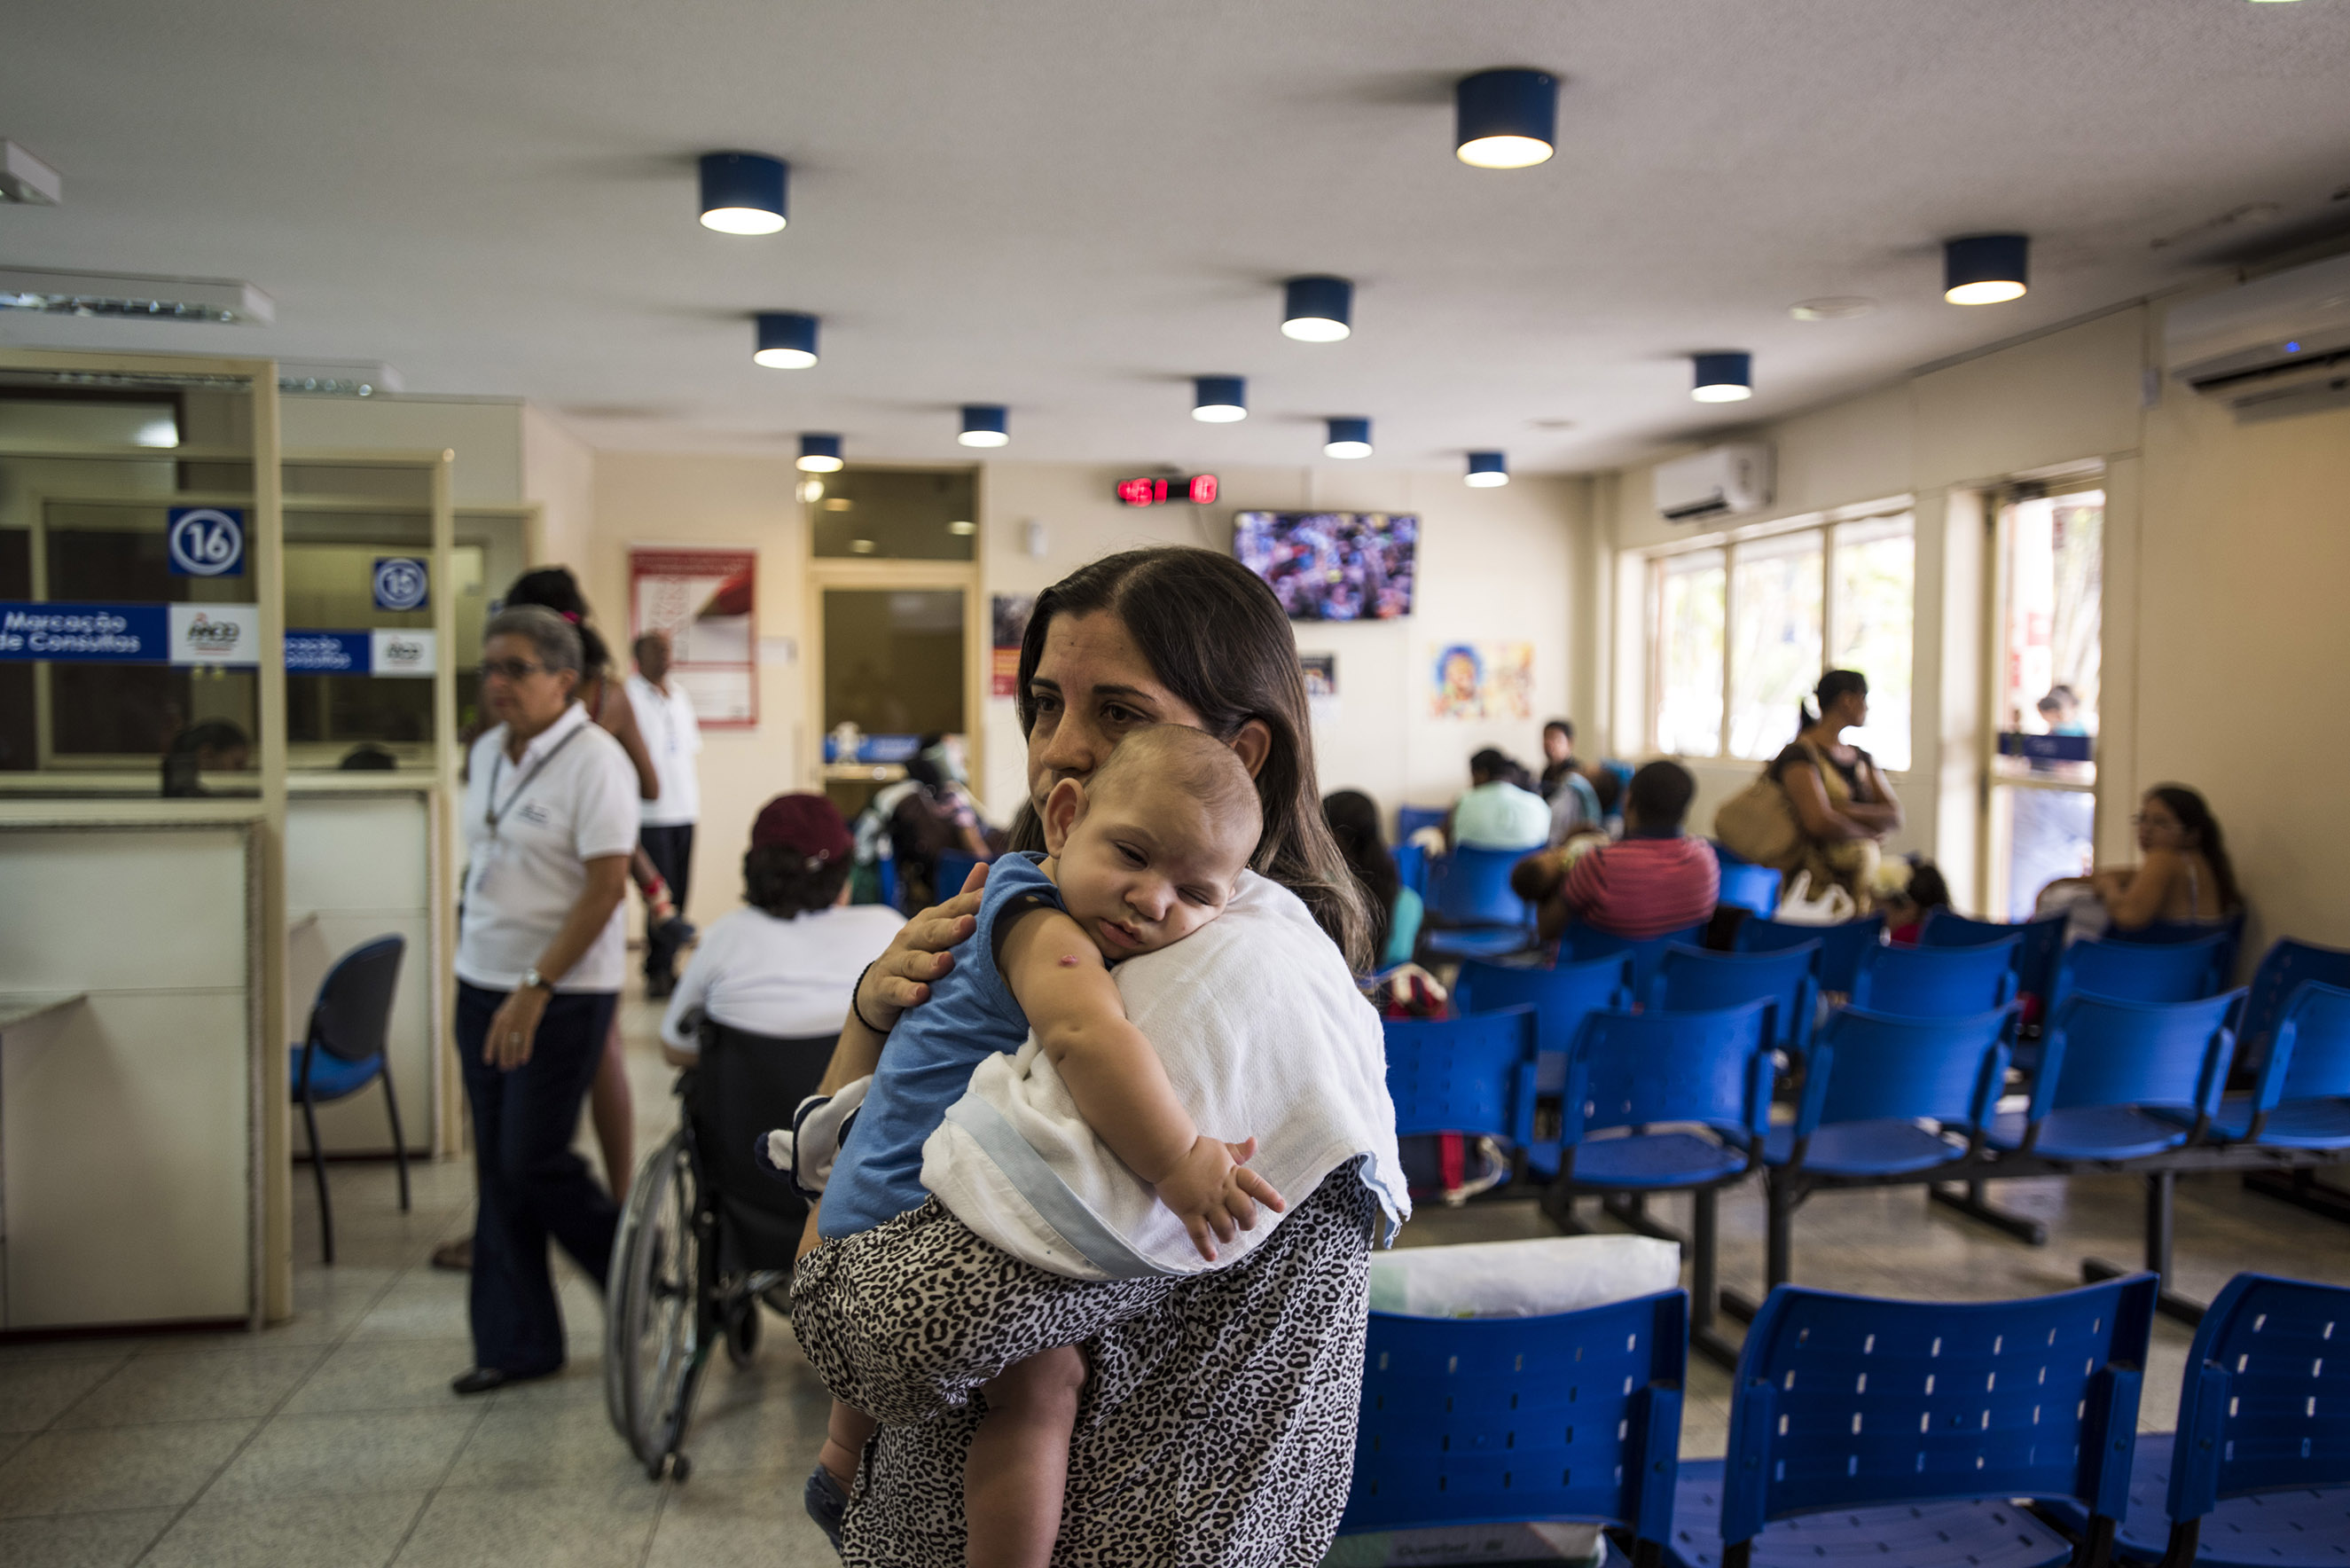 Isabel Albuquerque and her son in the waiting room of Associacao de Assistencia a Crianca Deficiente, a rehabilitation center for disabled children, in Recife, Brazil, Feb. 1, 2016.